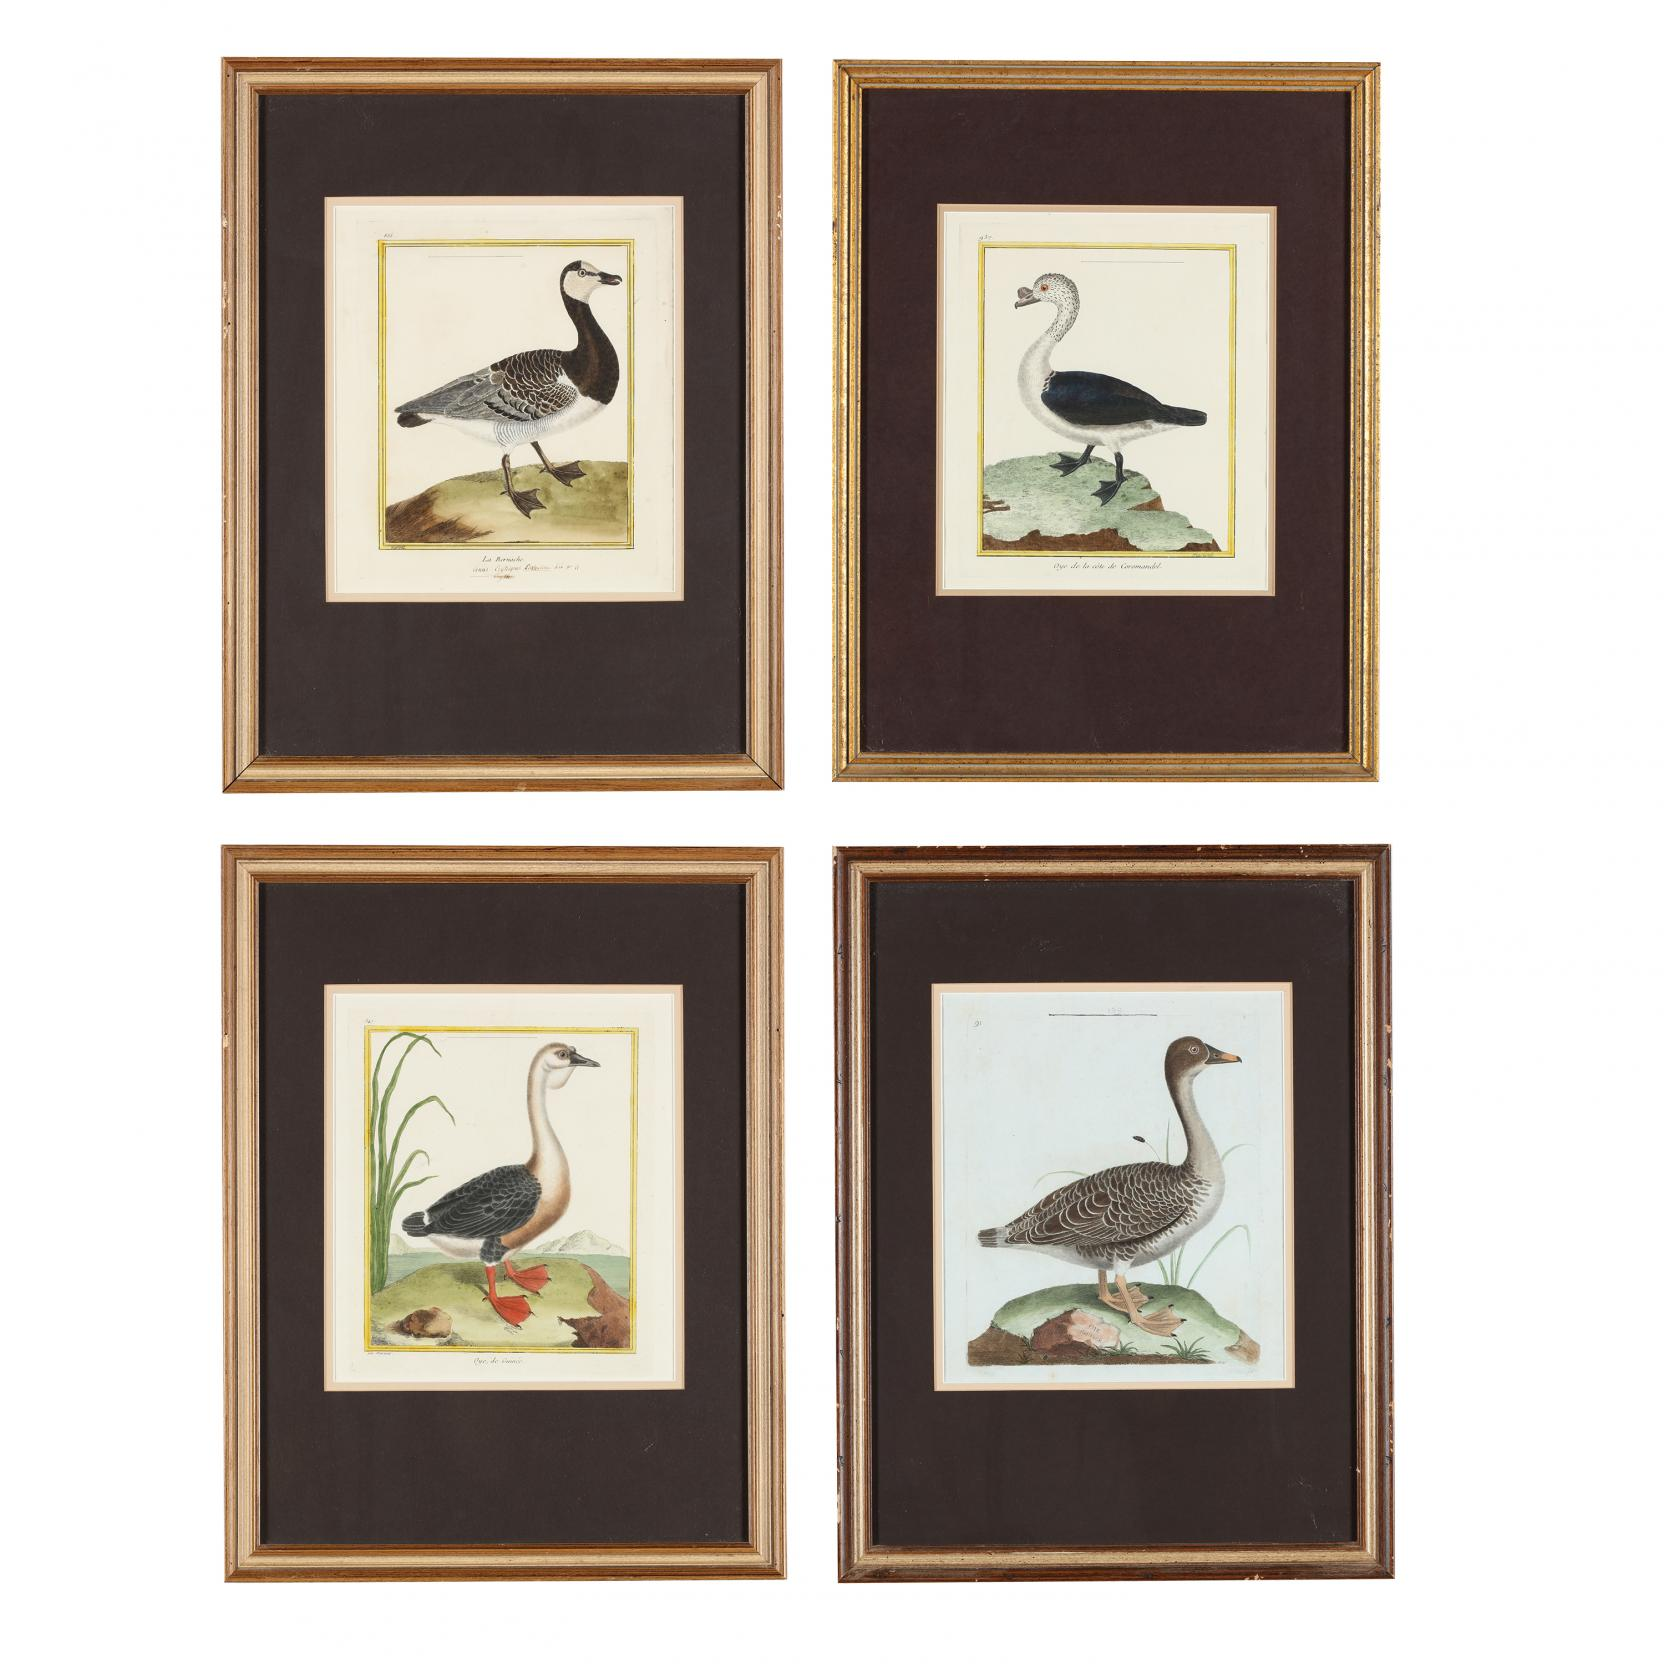 francois-nicolas-martinet-french-circa-1725-1804-four-hand-colored-engravings-from-i-histoire-naturelle-des-oiseaux-i